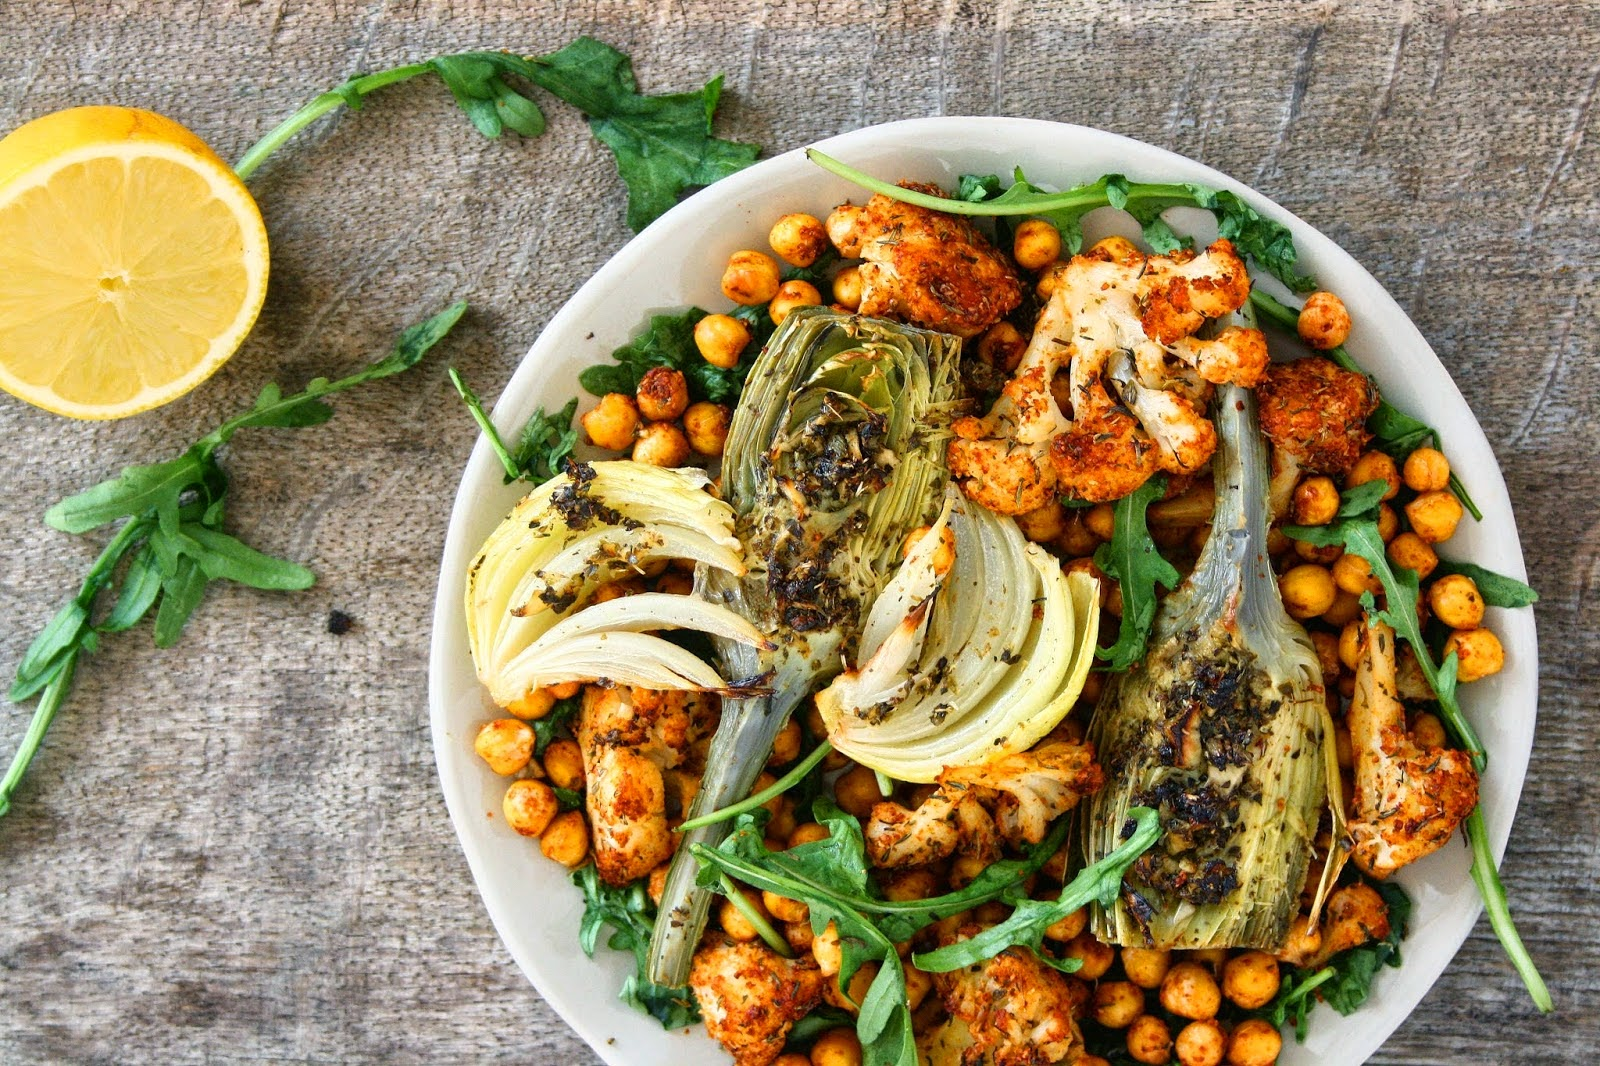 OVEN ROASTED VEGGIES & CHICKPEAS